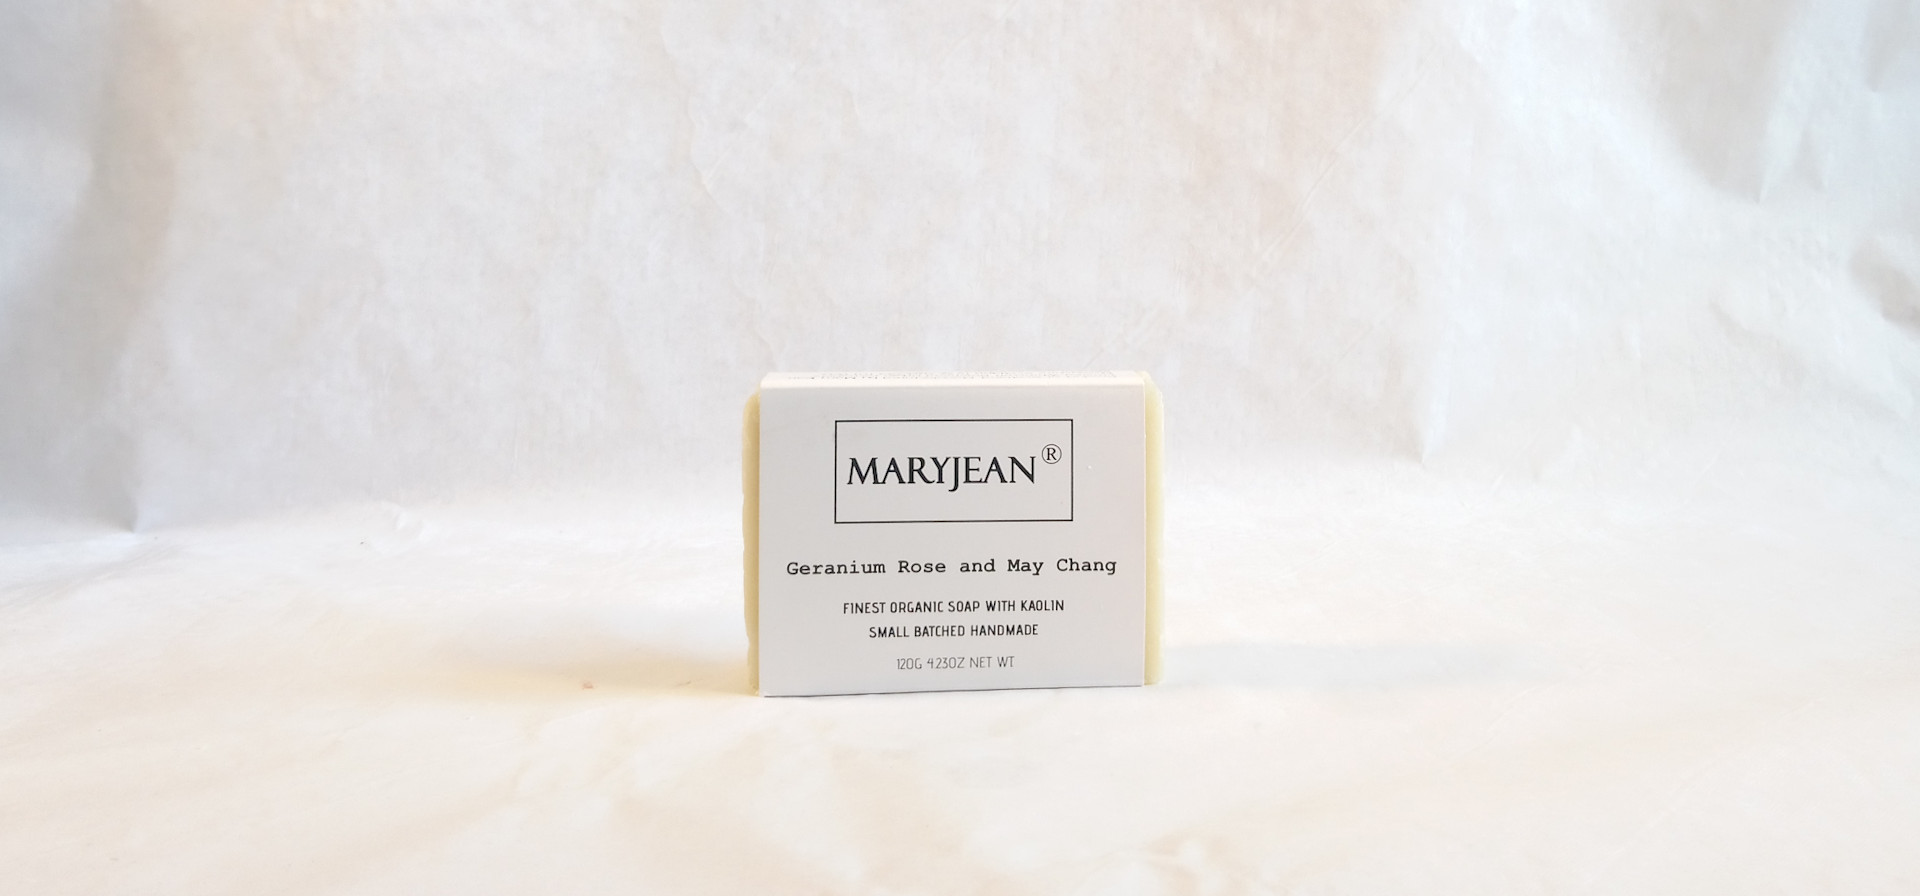 Twin Pack 2 Organic Scottish Geranium May Chang Gentlemen's Plastic And Sulphate Free Shaving Soaps Handmade With Kaolin en_GB